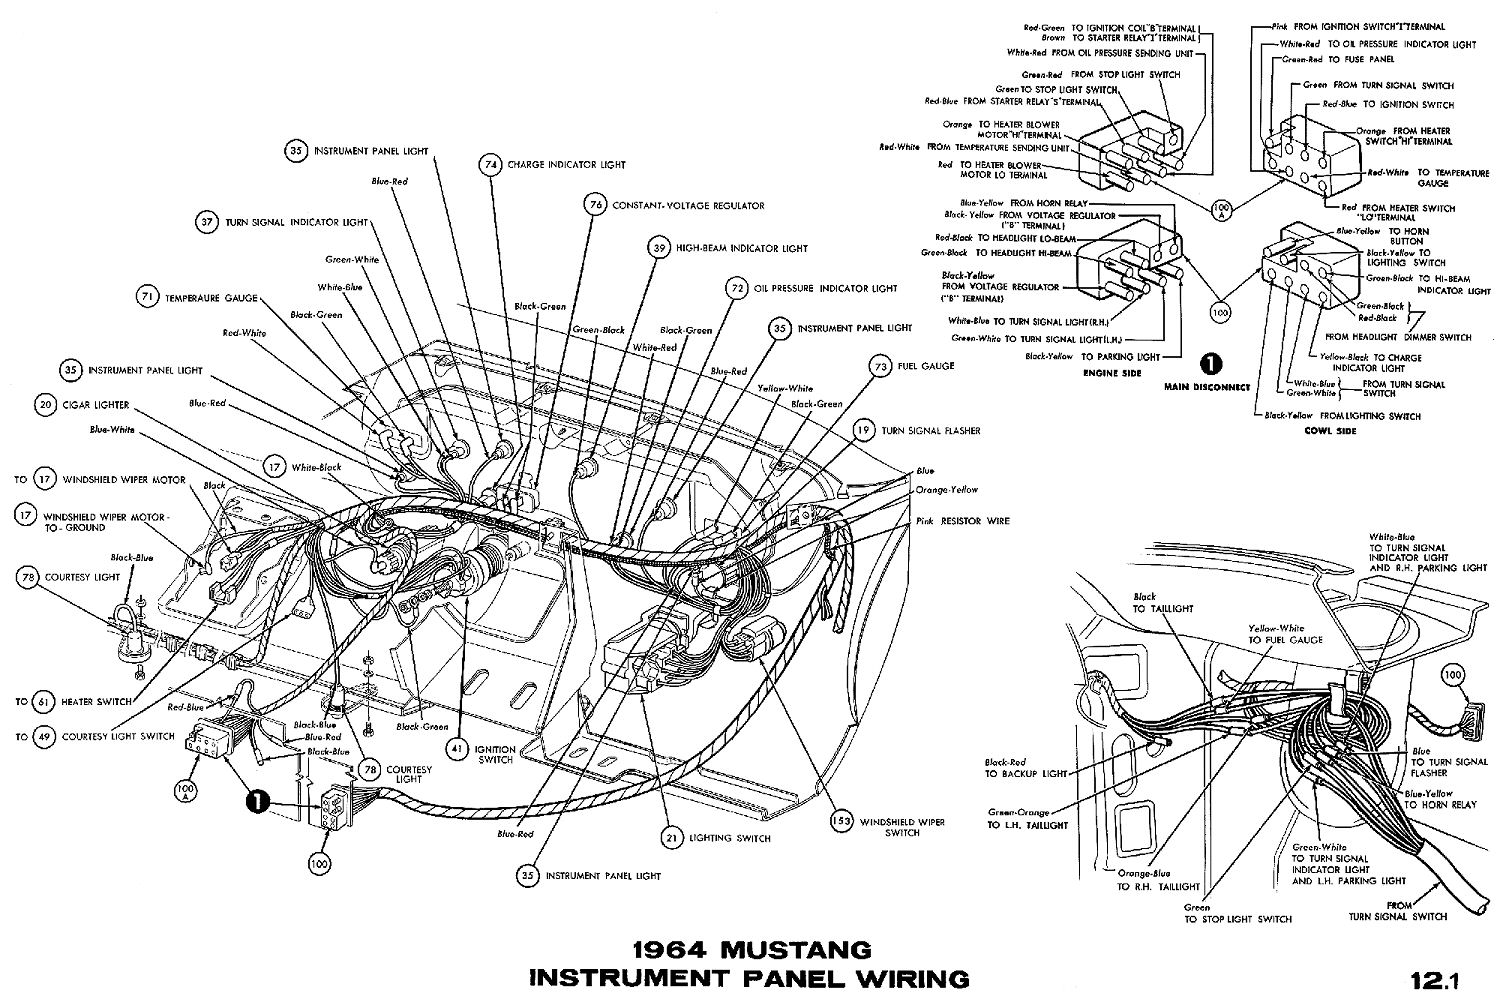 1968 Mustang Dash Cluster Wiring Diagram Library Chevelle Instrument Connections 1964 Diagrams